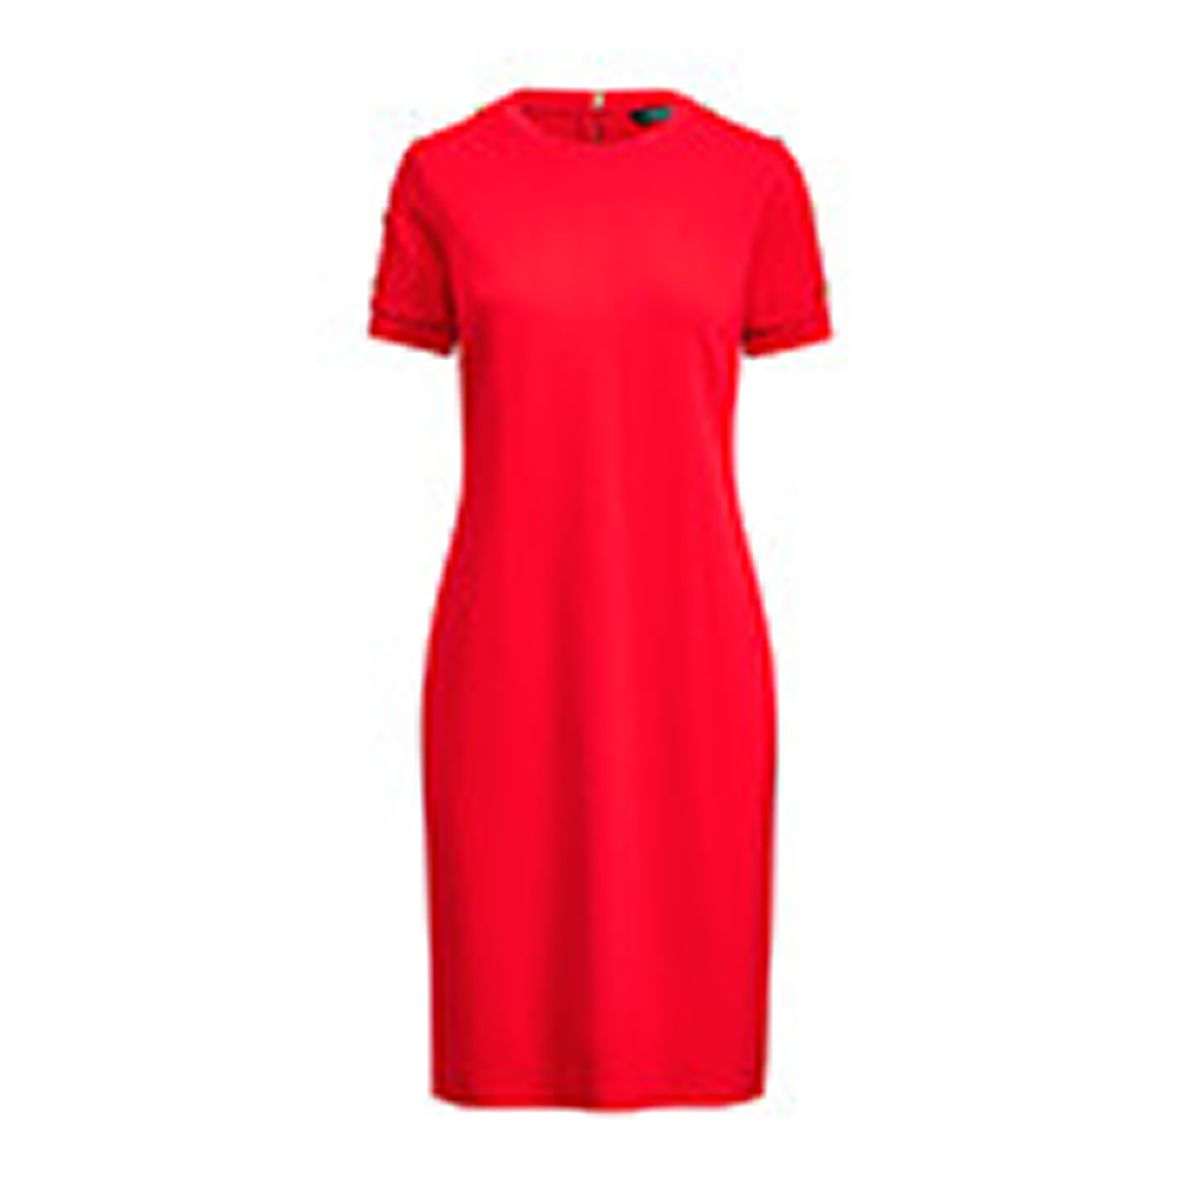 b70cc444166 Lauren Ralph Lauren Dresses for Women - Macy s